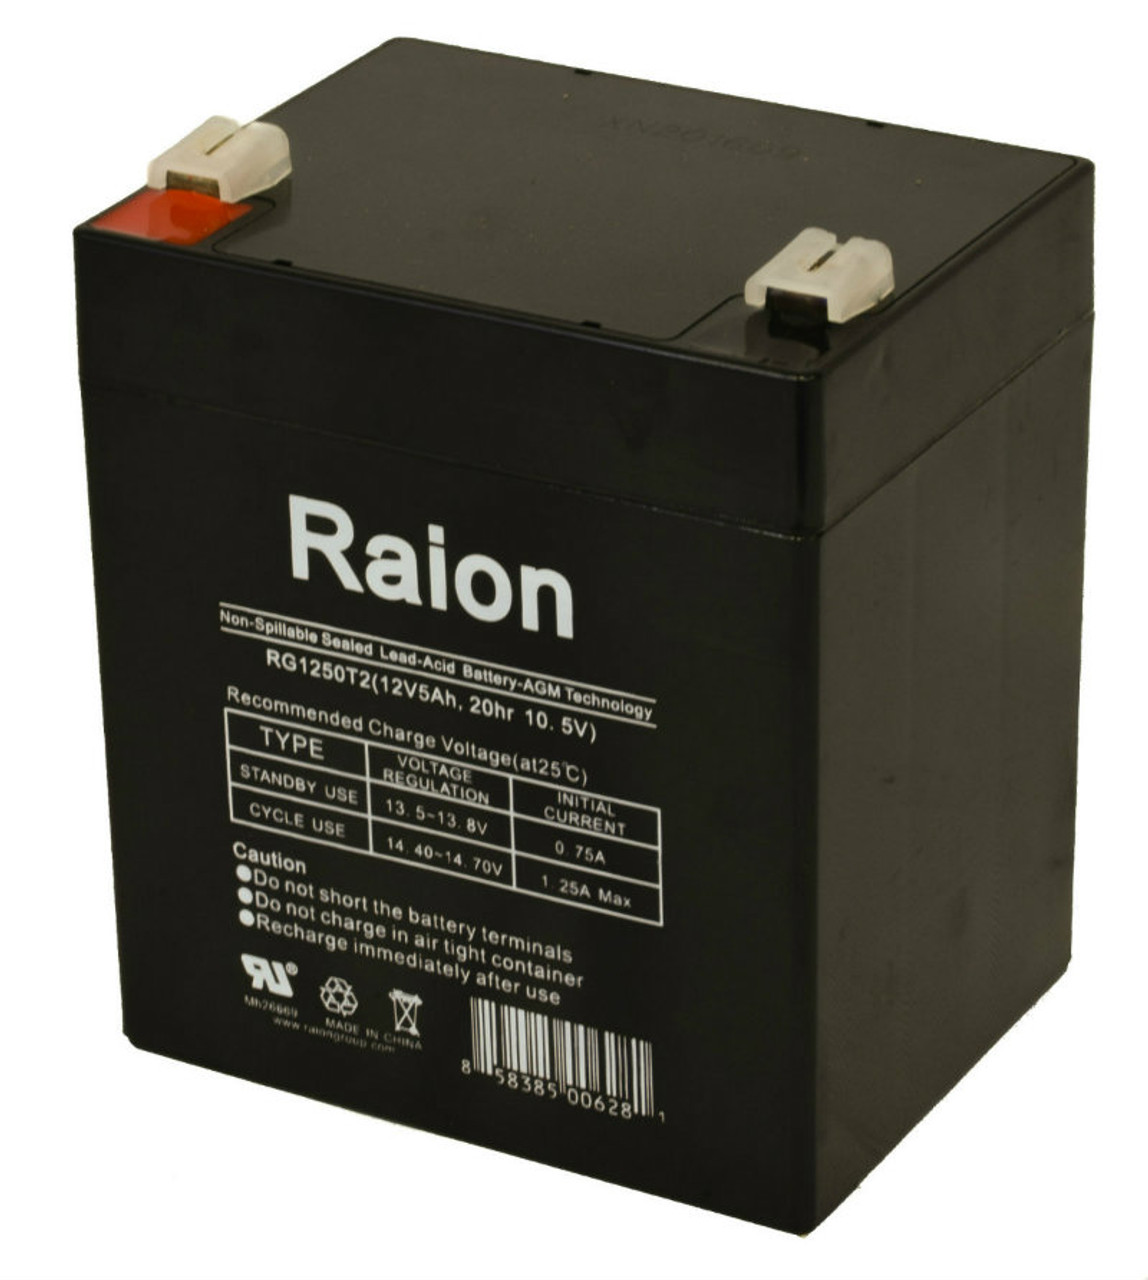 Raion Power RG1250T1 Replacement Battery for Newmox FNC-1245